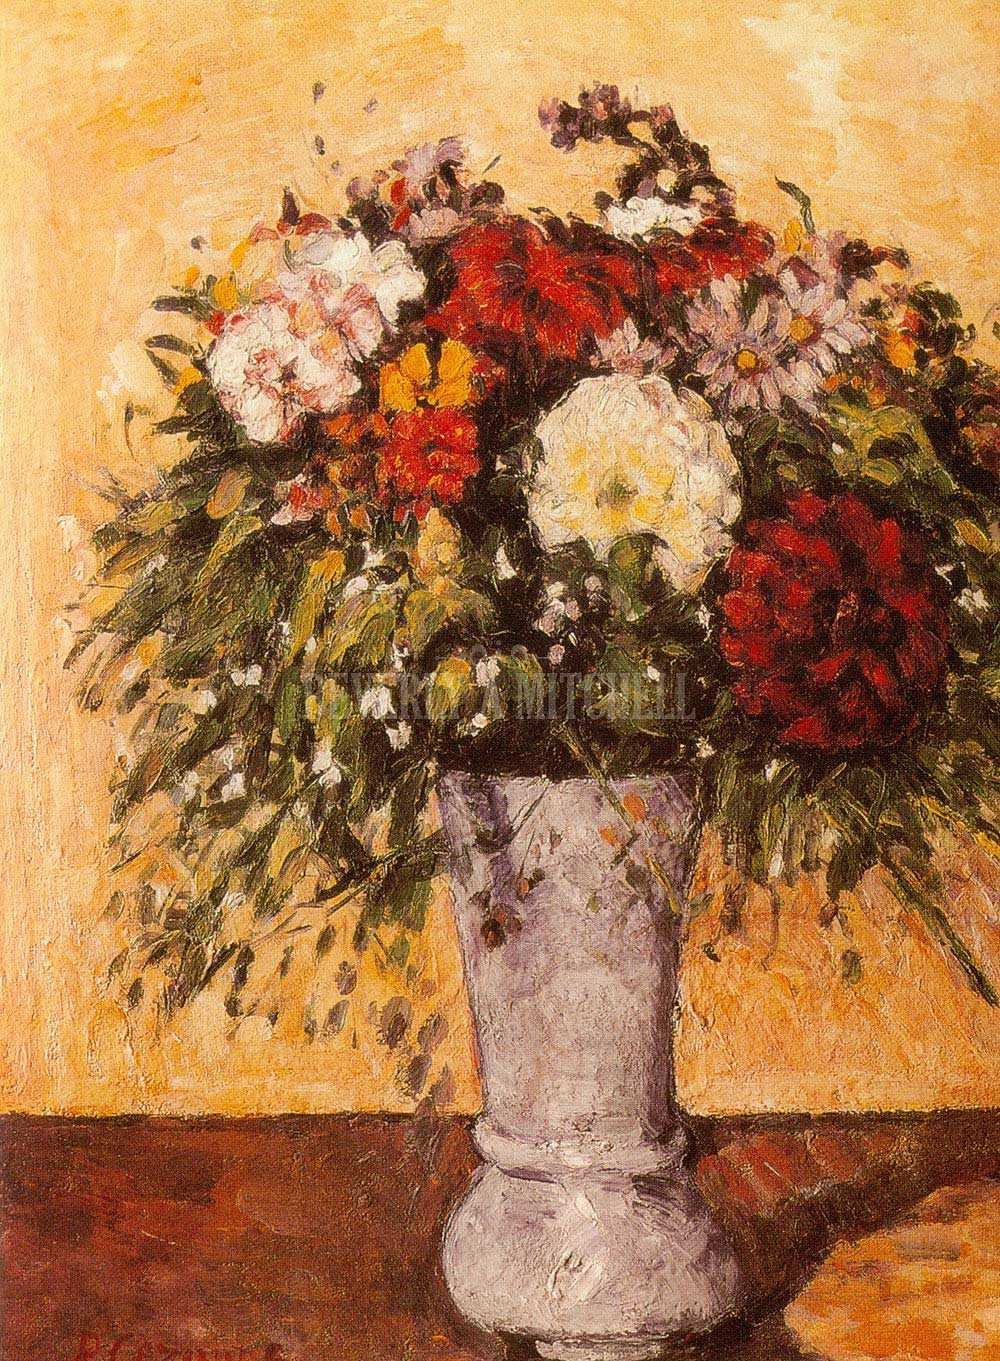 The Blue Vase by Paul Cezanne original Of Flowers In A Blue Vase by Paul Cezanne for Flowers In A Blue Vase A21 Paul Cezanne